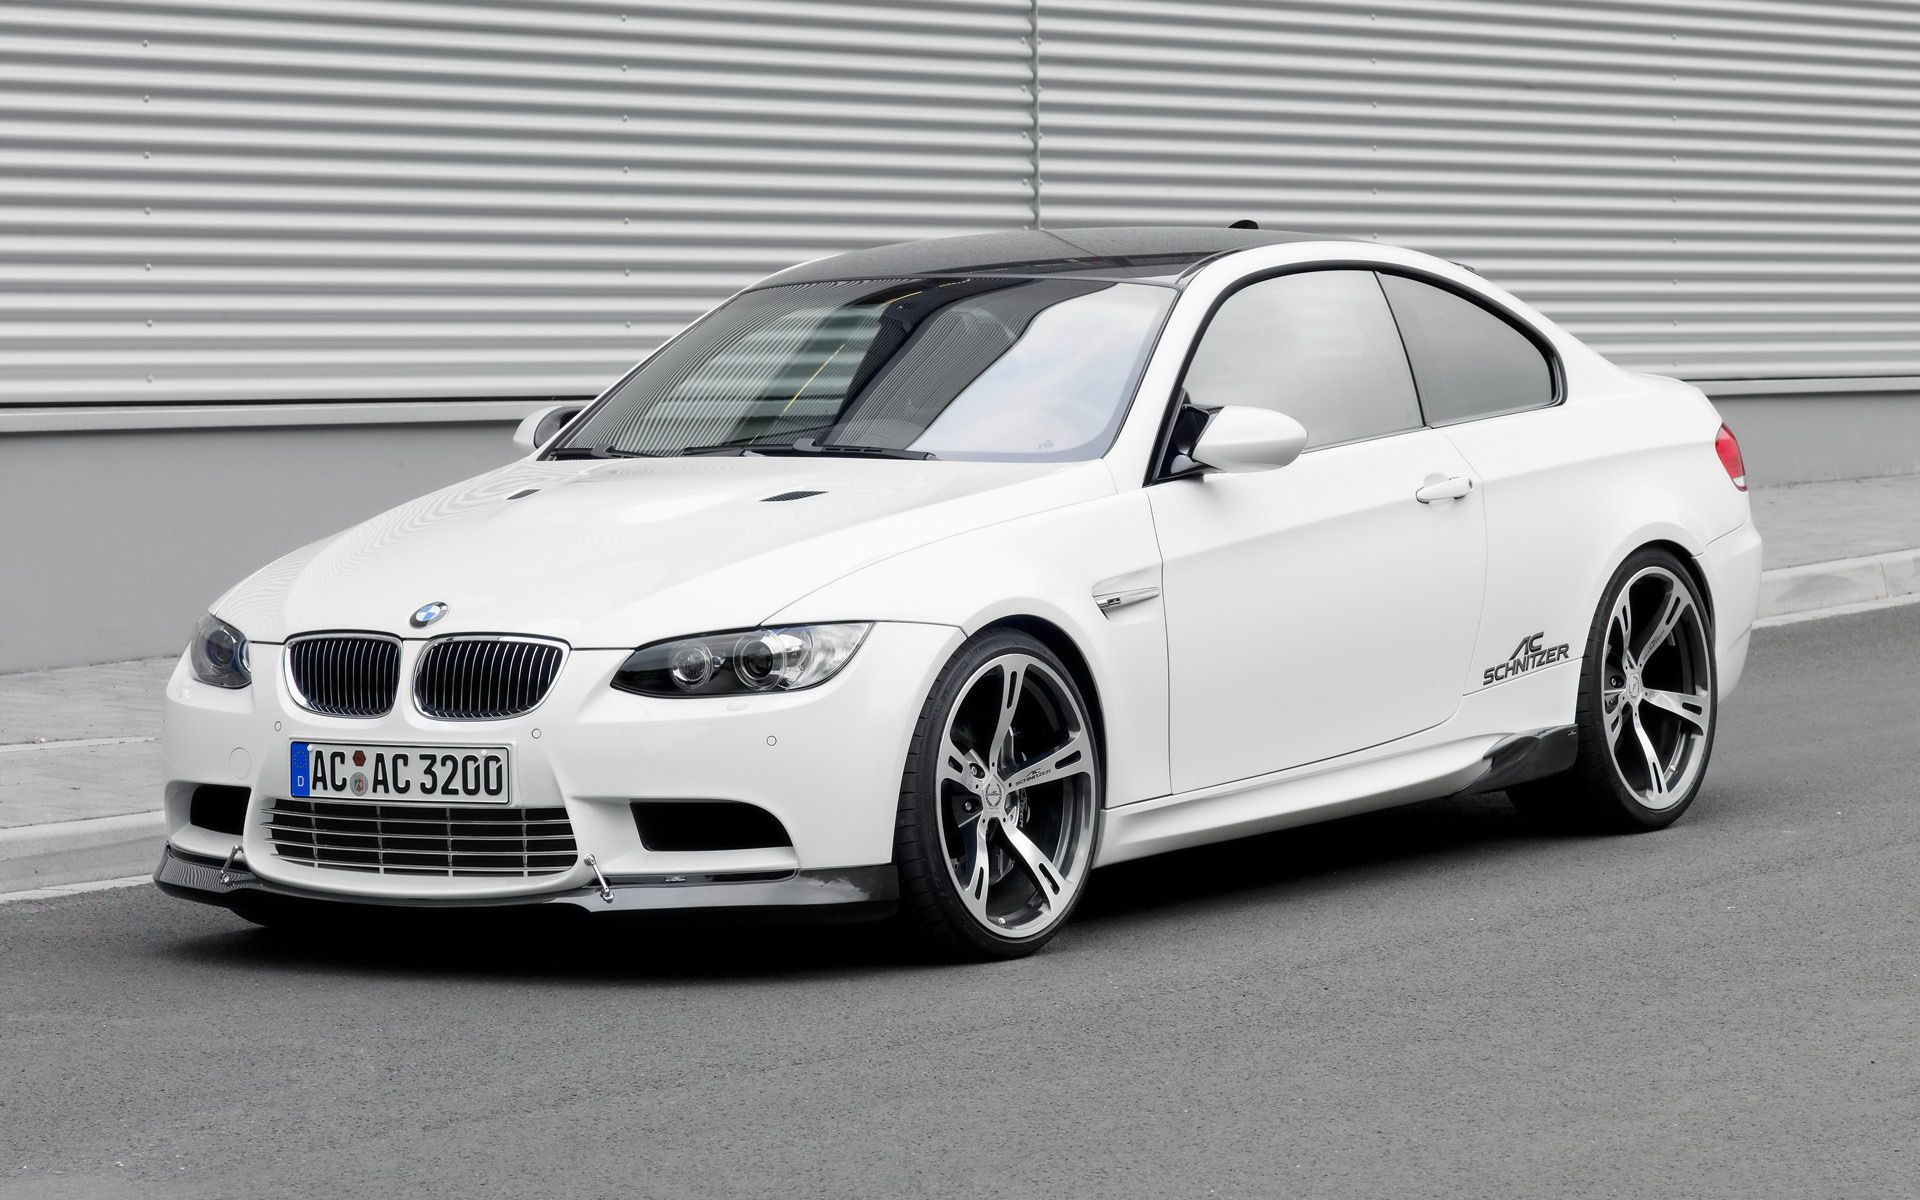 Bmw m3 sports check out these bimmers http